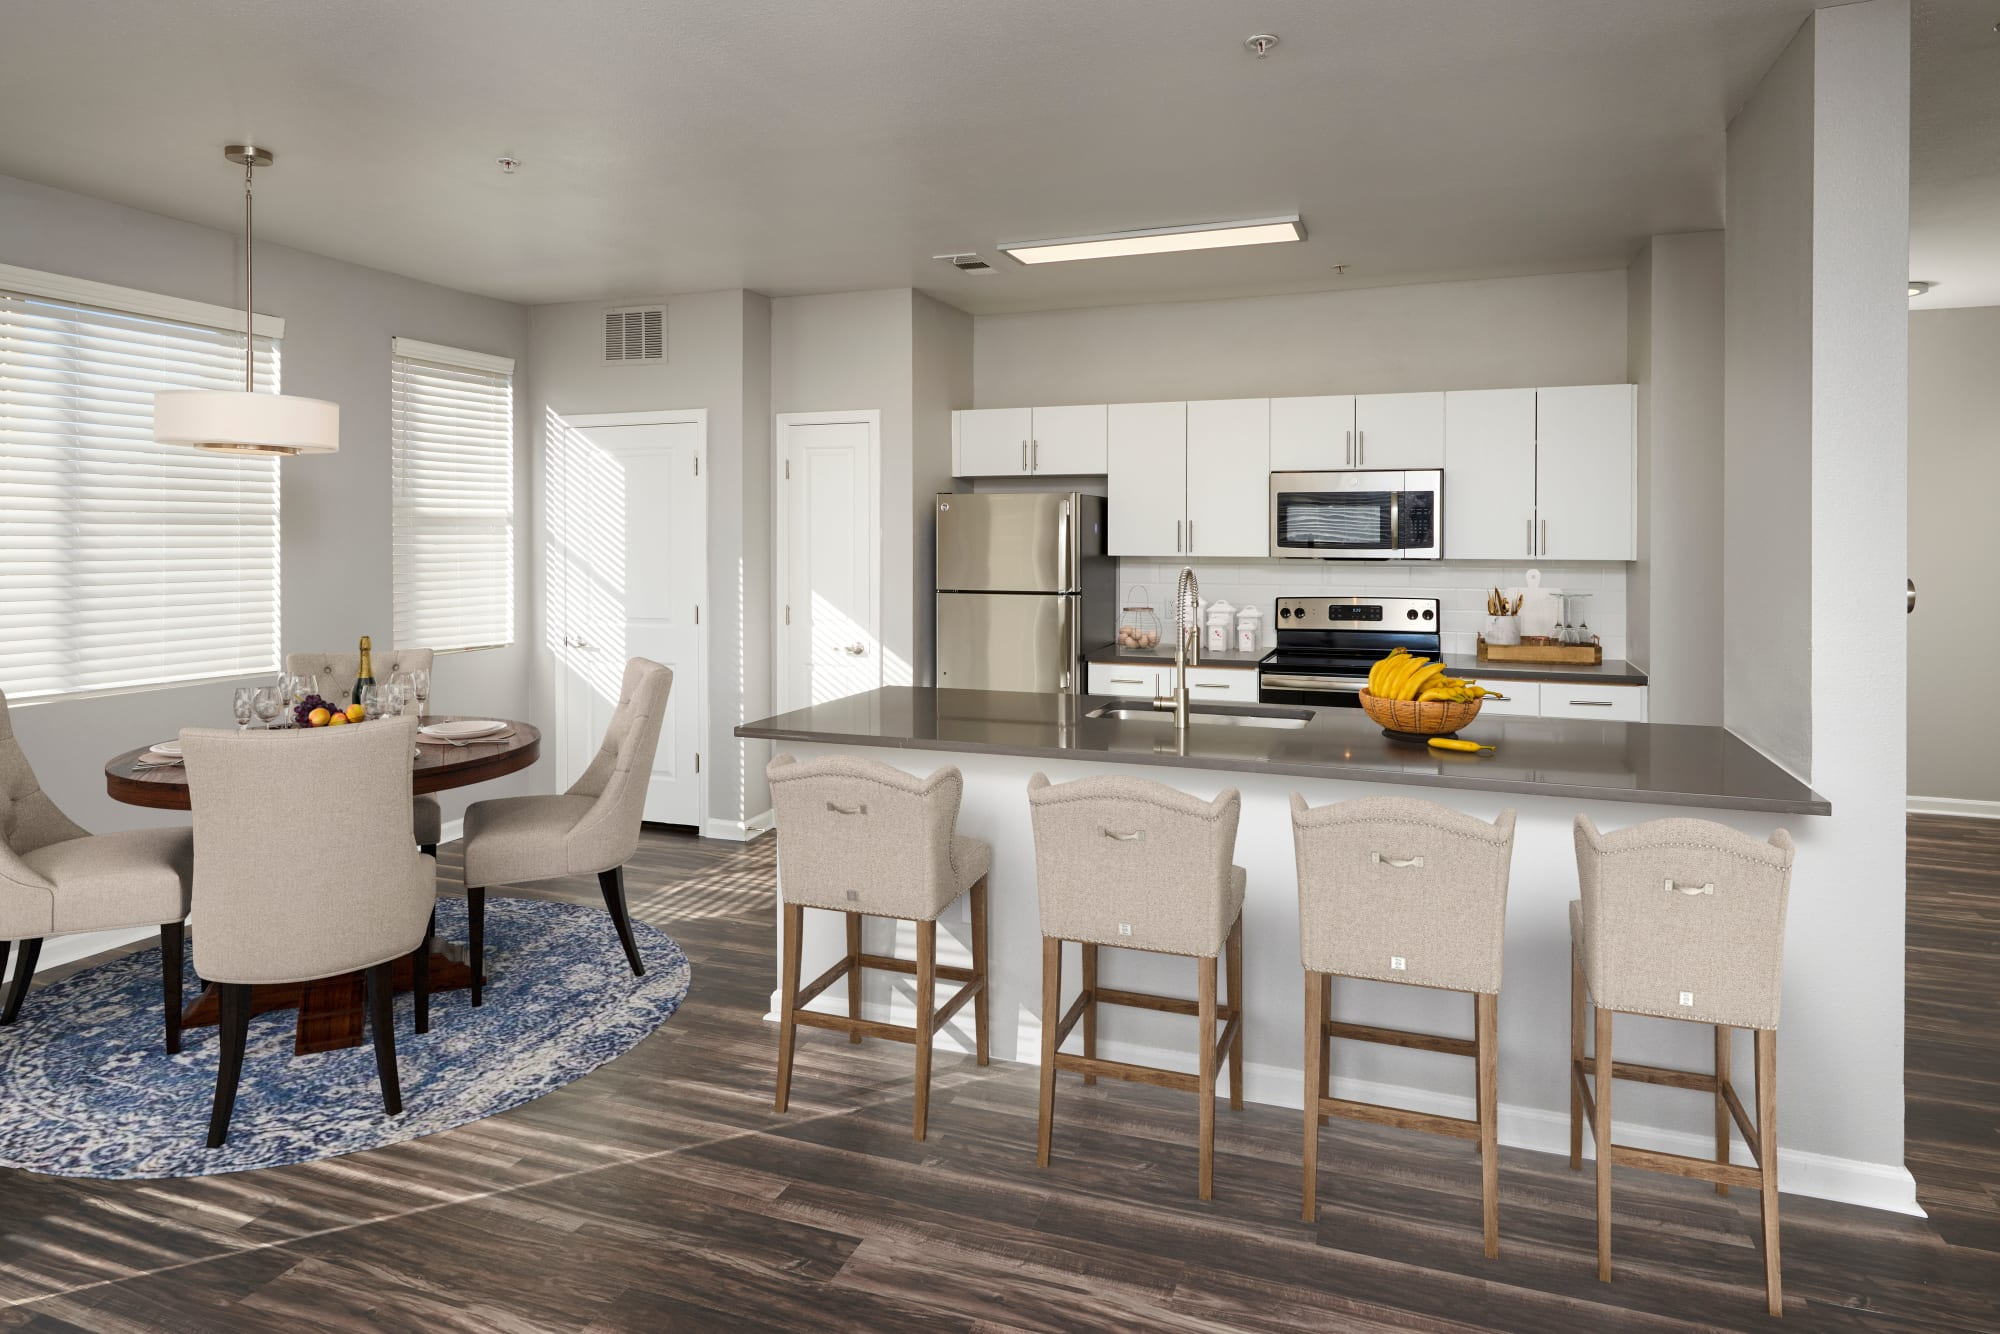 Beautiful white cabinetry in a renovated kitchen with stainless steel appliances and a kitchen island at The Rail at Inverness in Englewood, Colorado